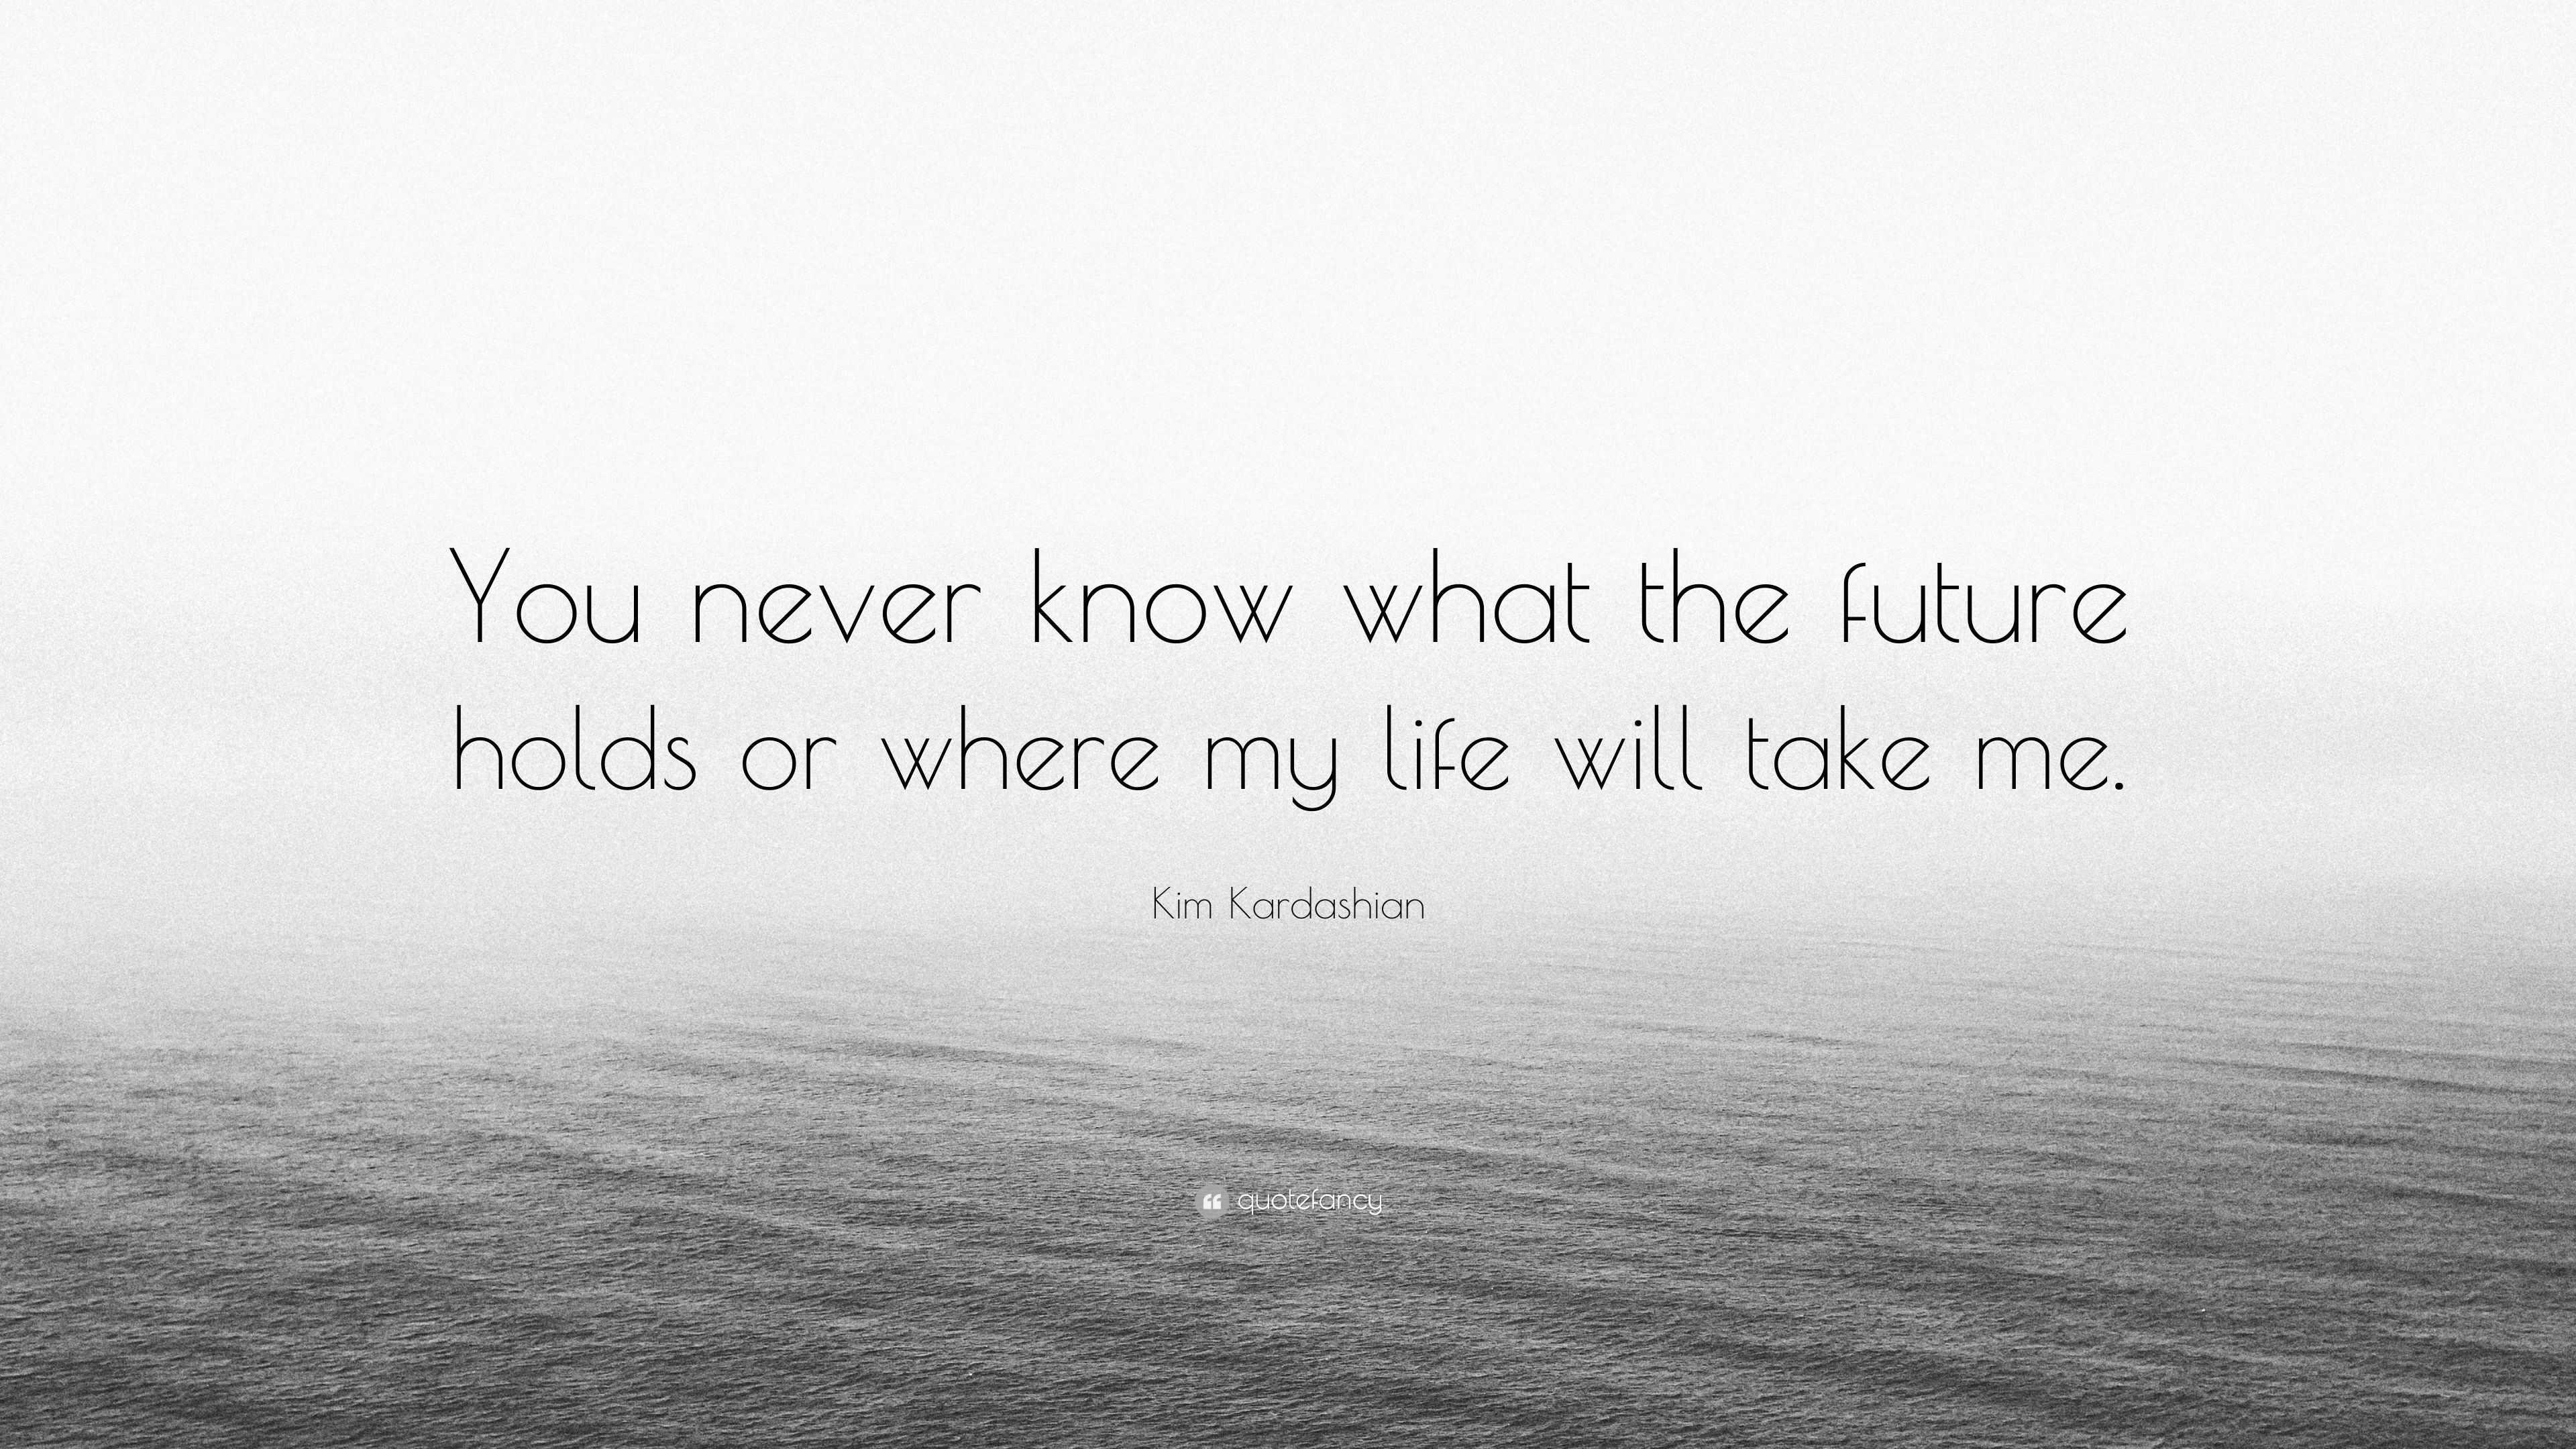 Kim Kardashian Quote You Never Know What The Future Holds Or Where